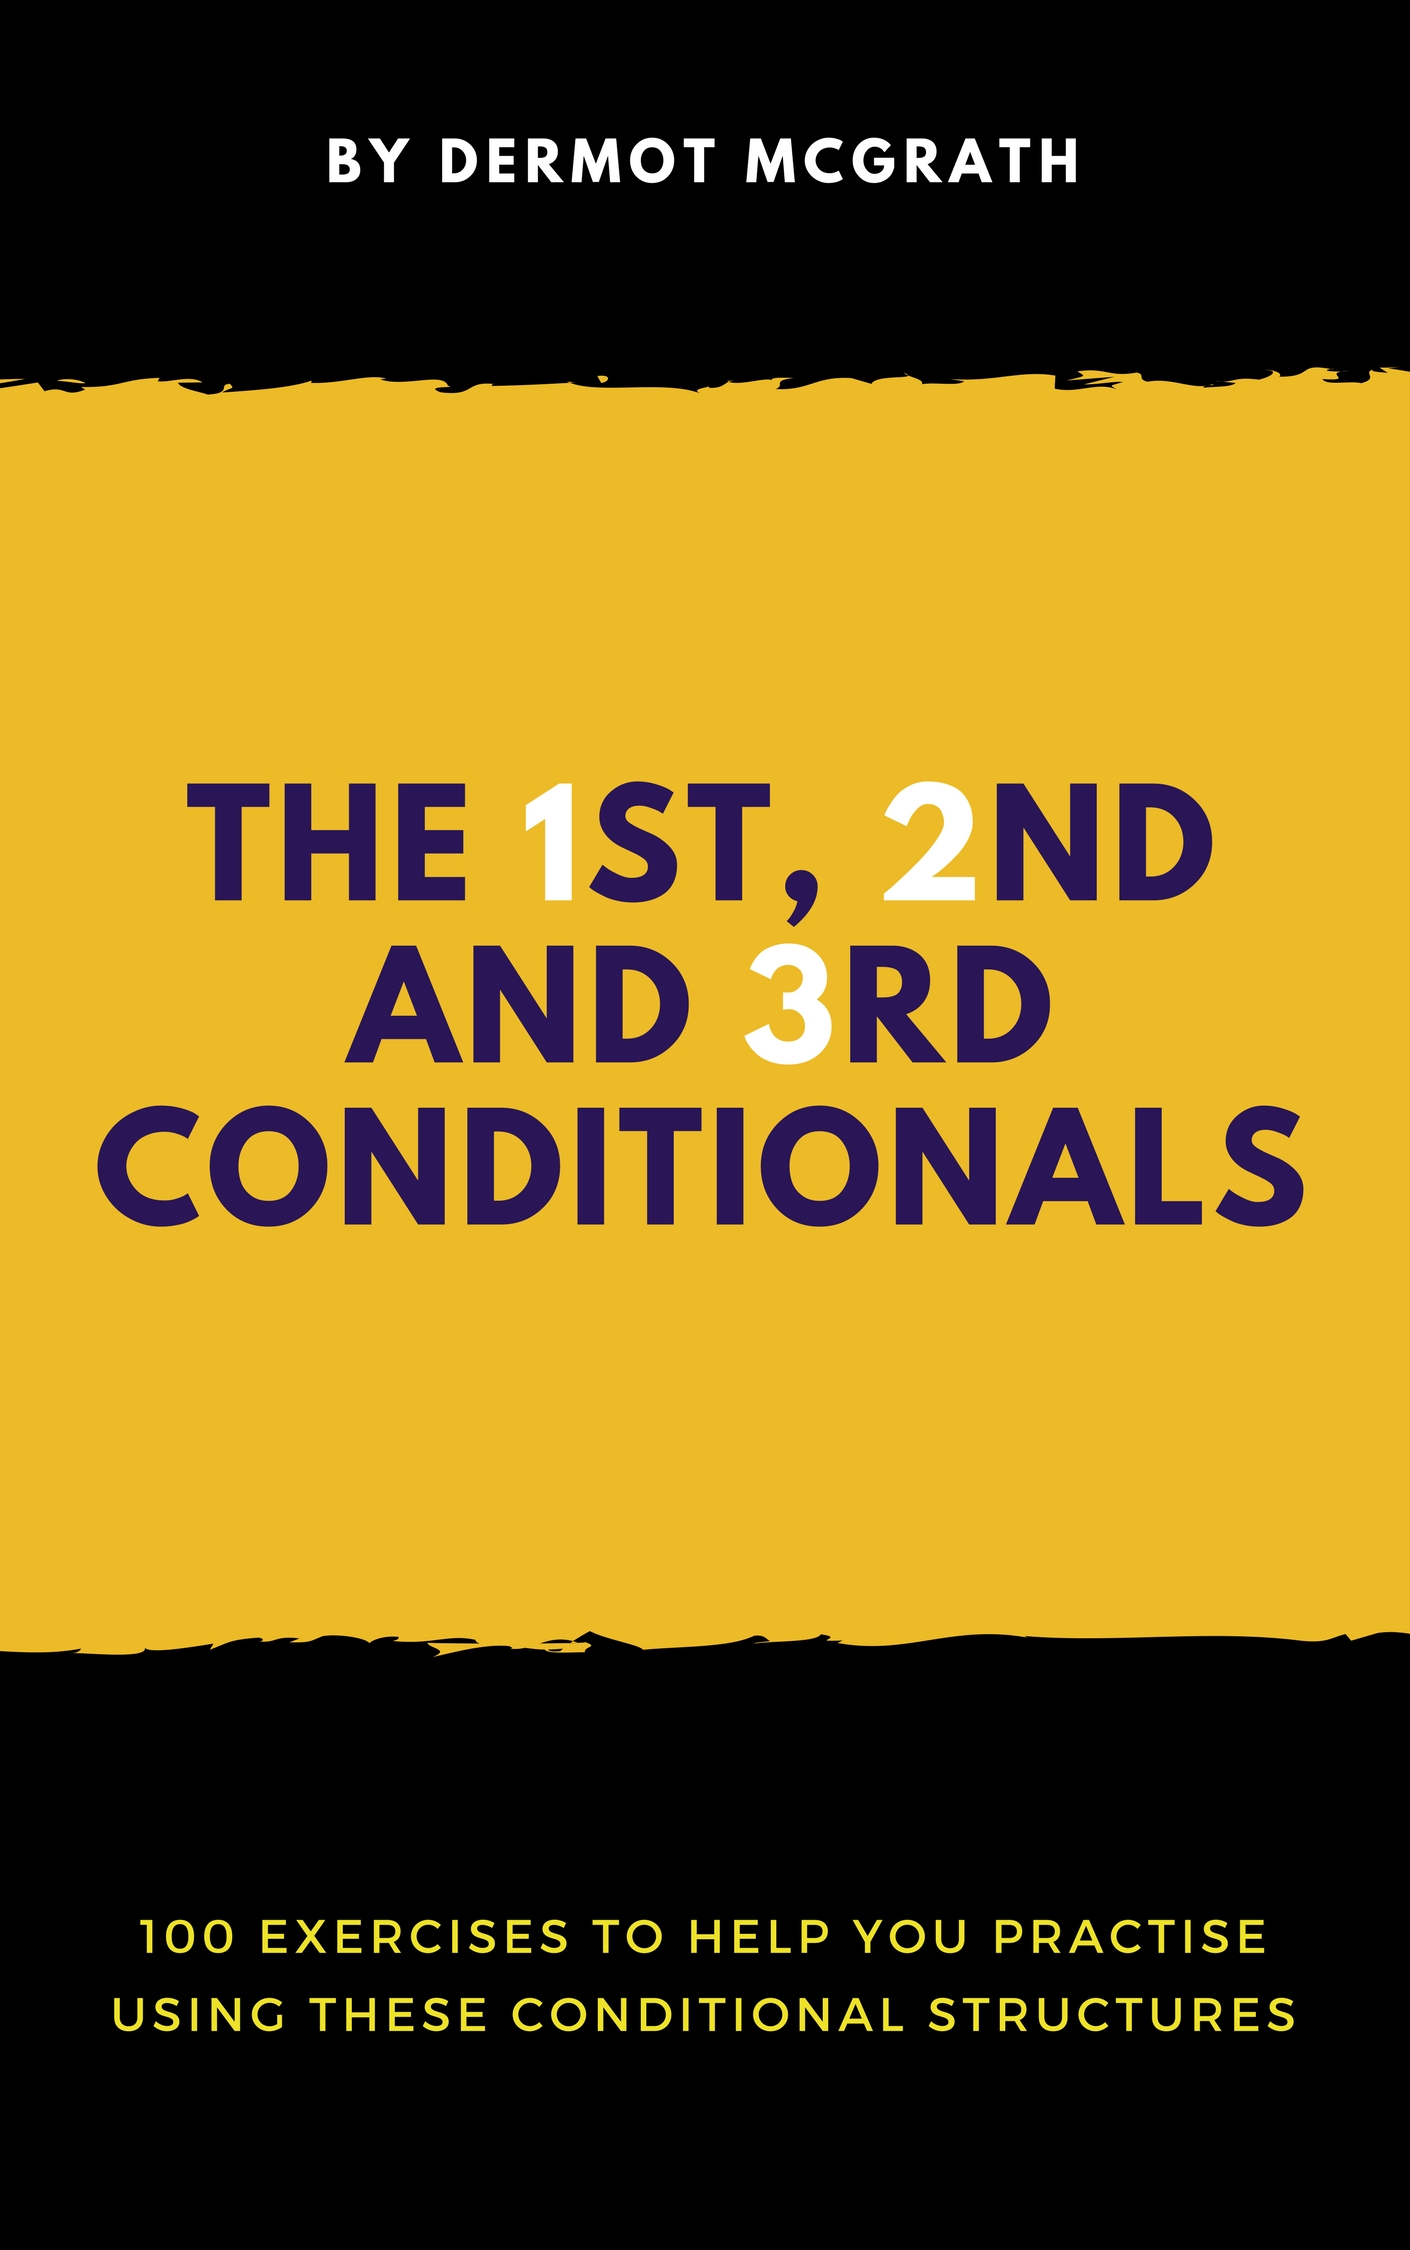 The 1 st, 2 nd and 3 rd Conditionals - Dermot McGrath